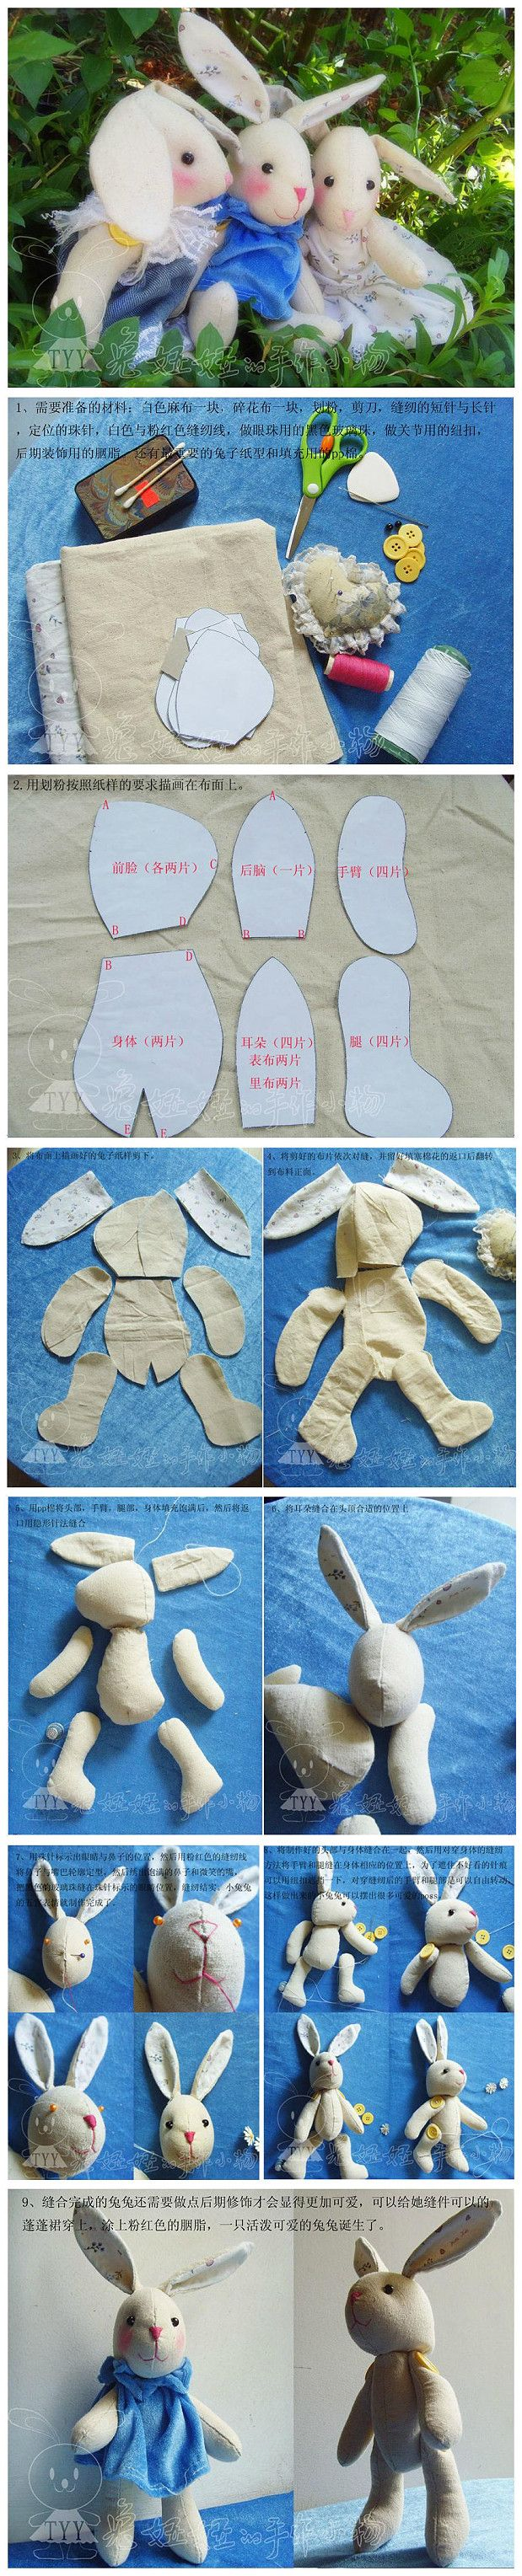 DIY Adorable Bunny Doll | Pinterest | süßer Hase, Hase und Schnittmuster